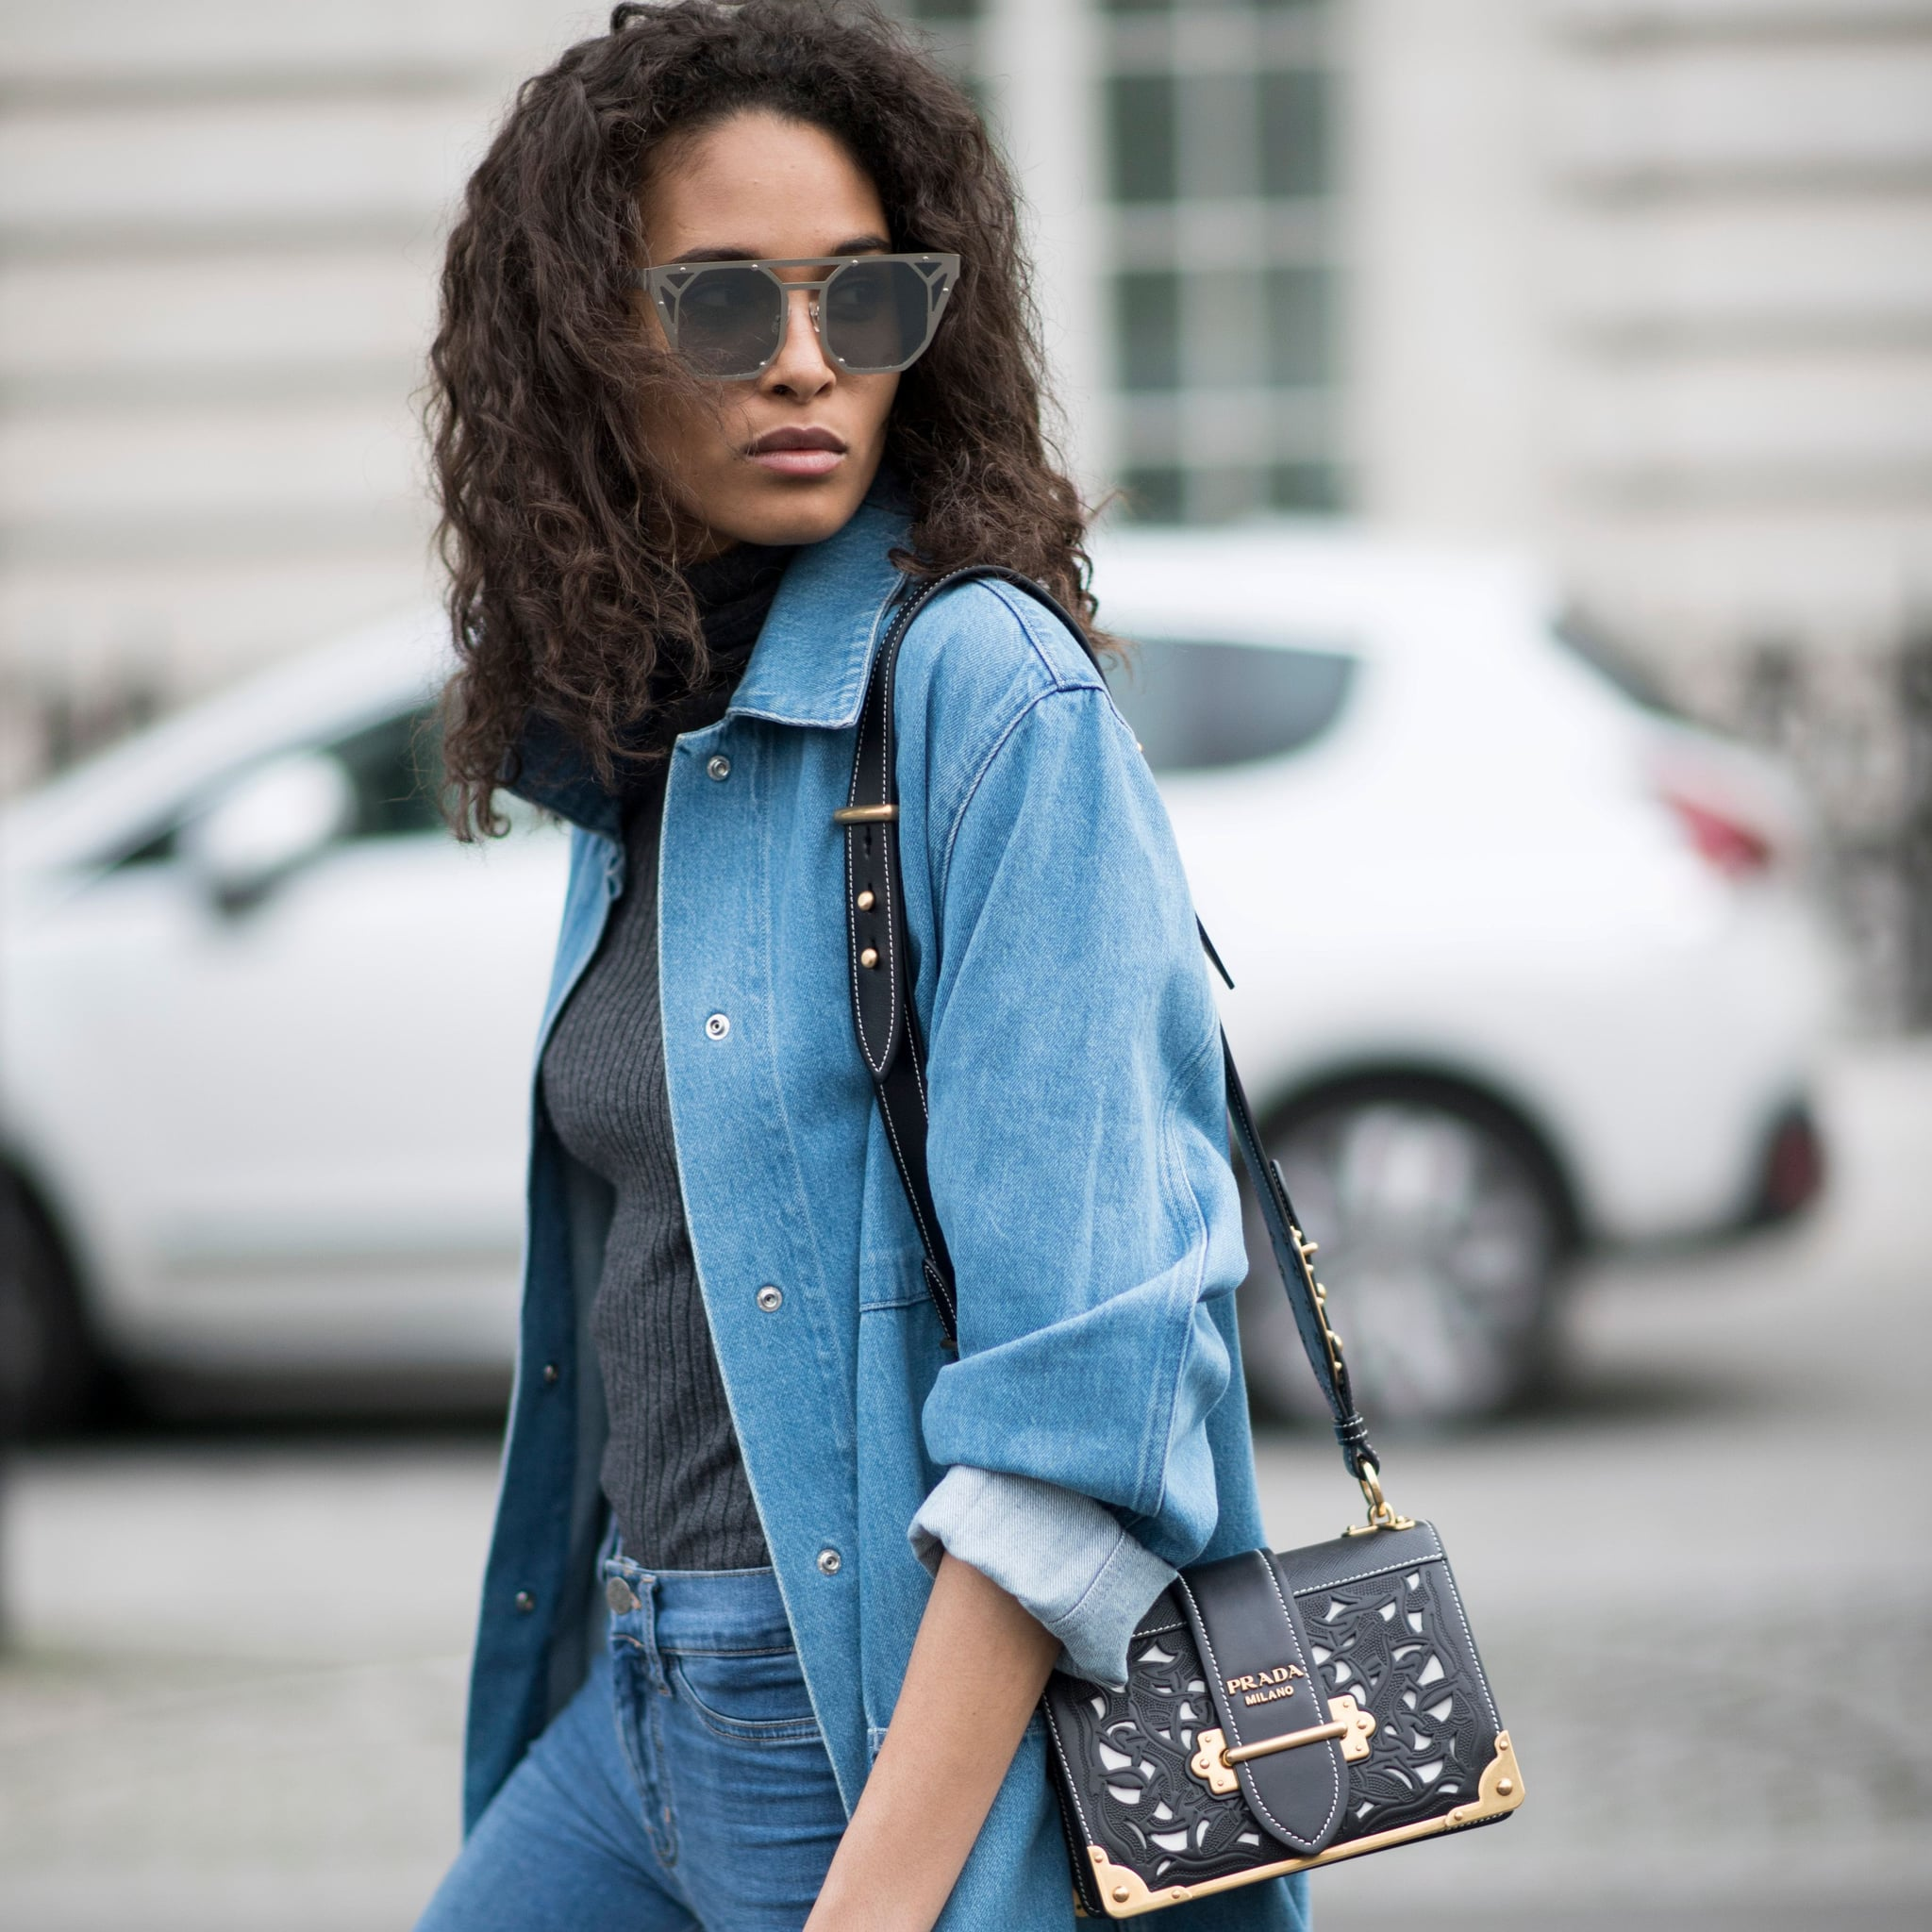 Stylish Ways to Dress Up Your Jeans | POPSUGAR Fashion Australia